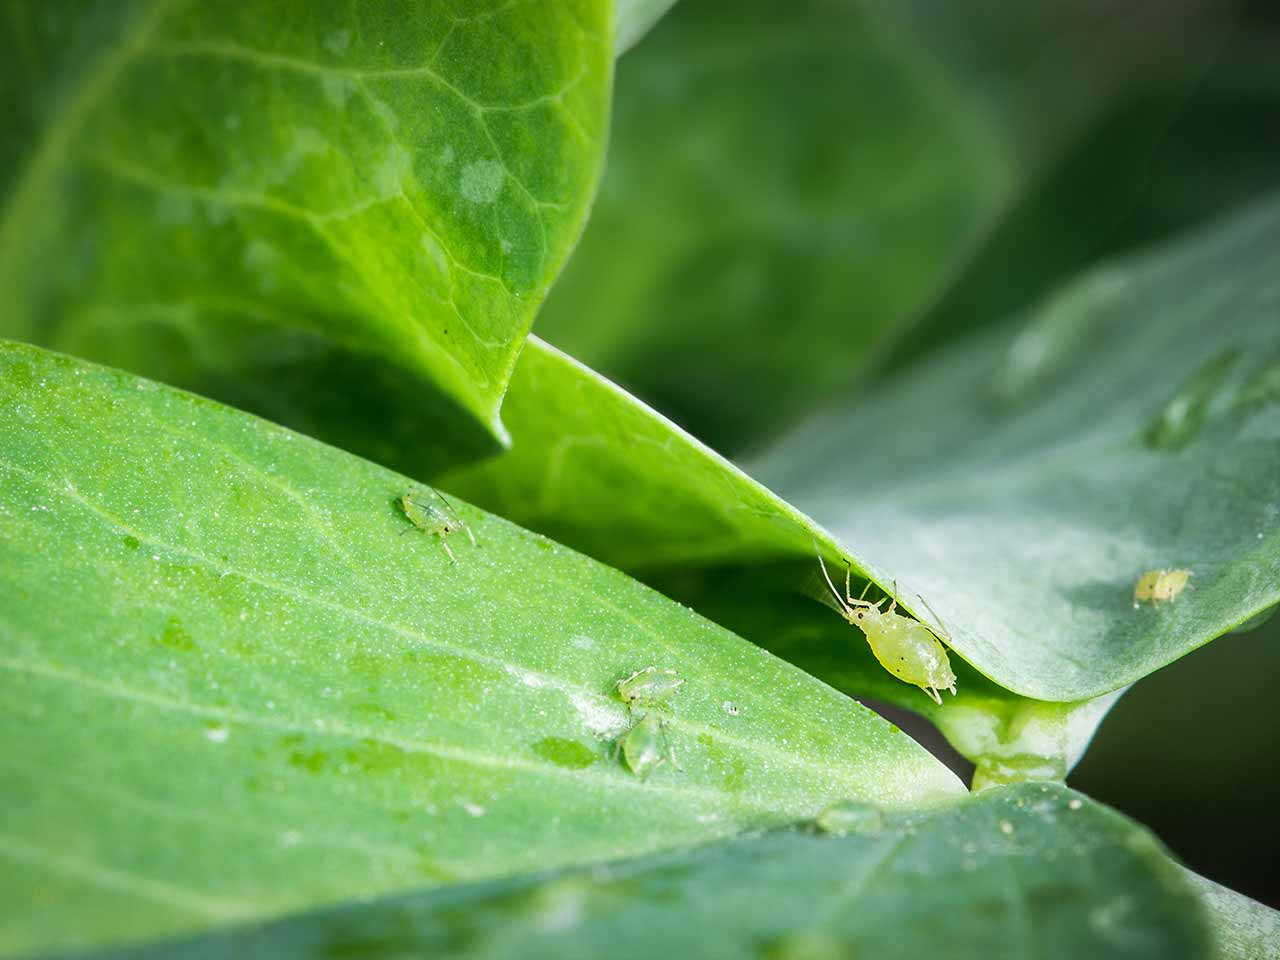 Aphid control: How to get rid of aphids - Saga